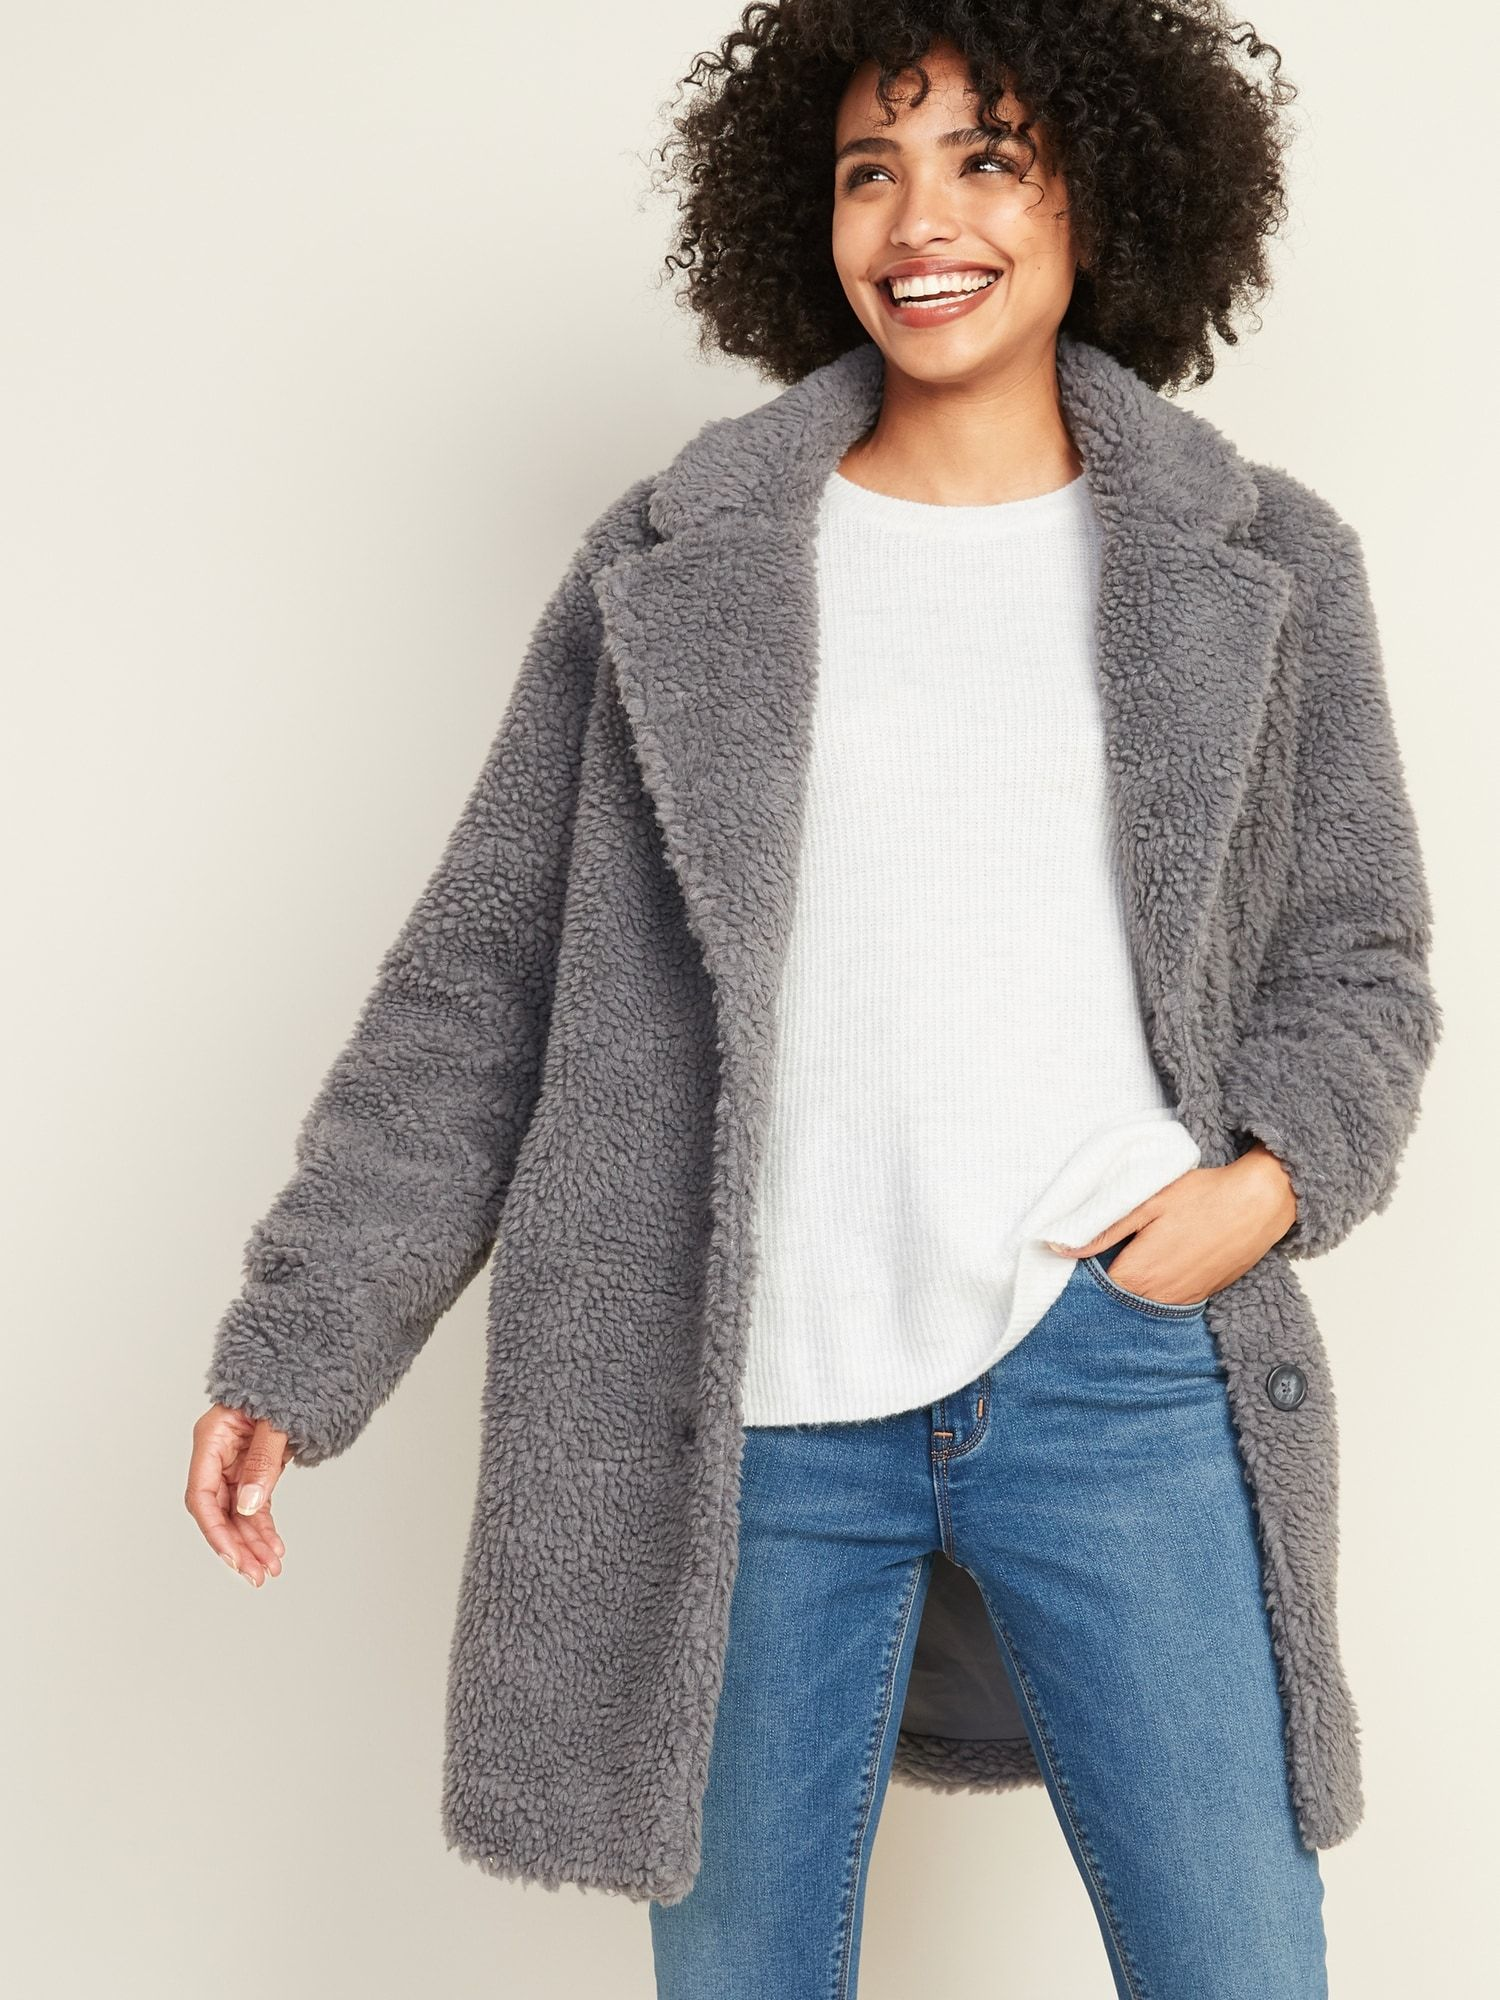 LongLine Sherpa Jacket for Women Old Navy Jackets for